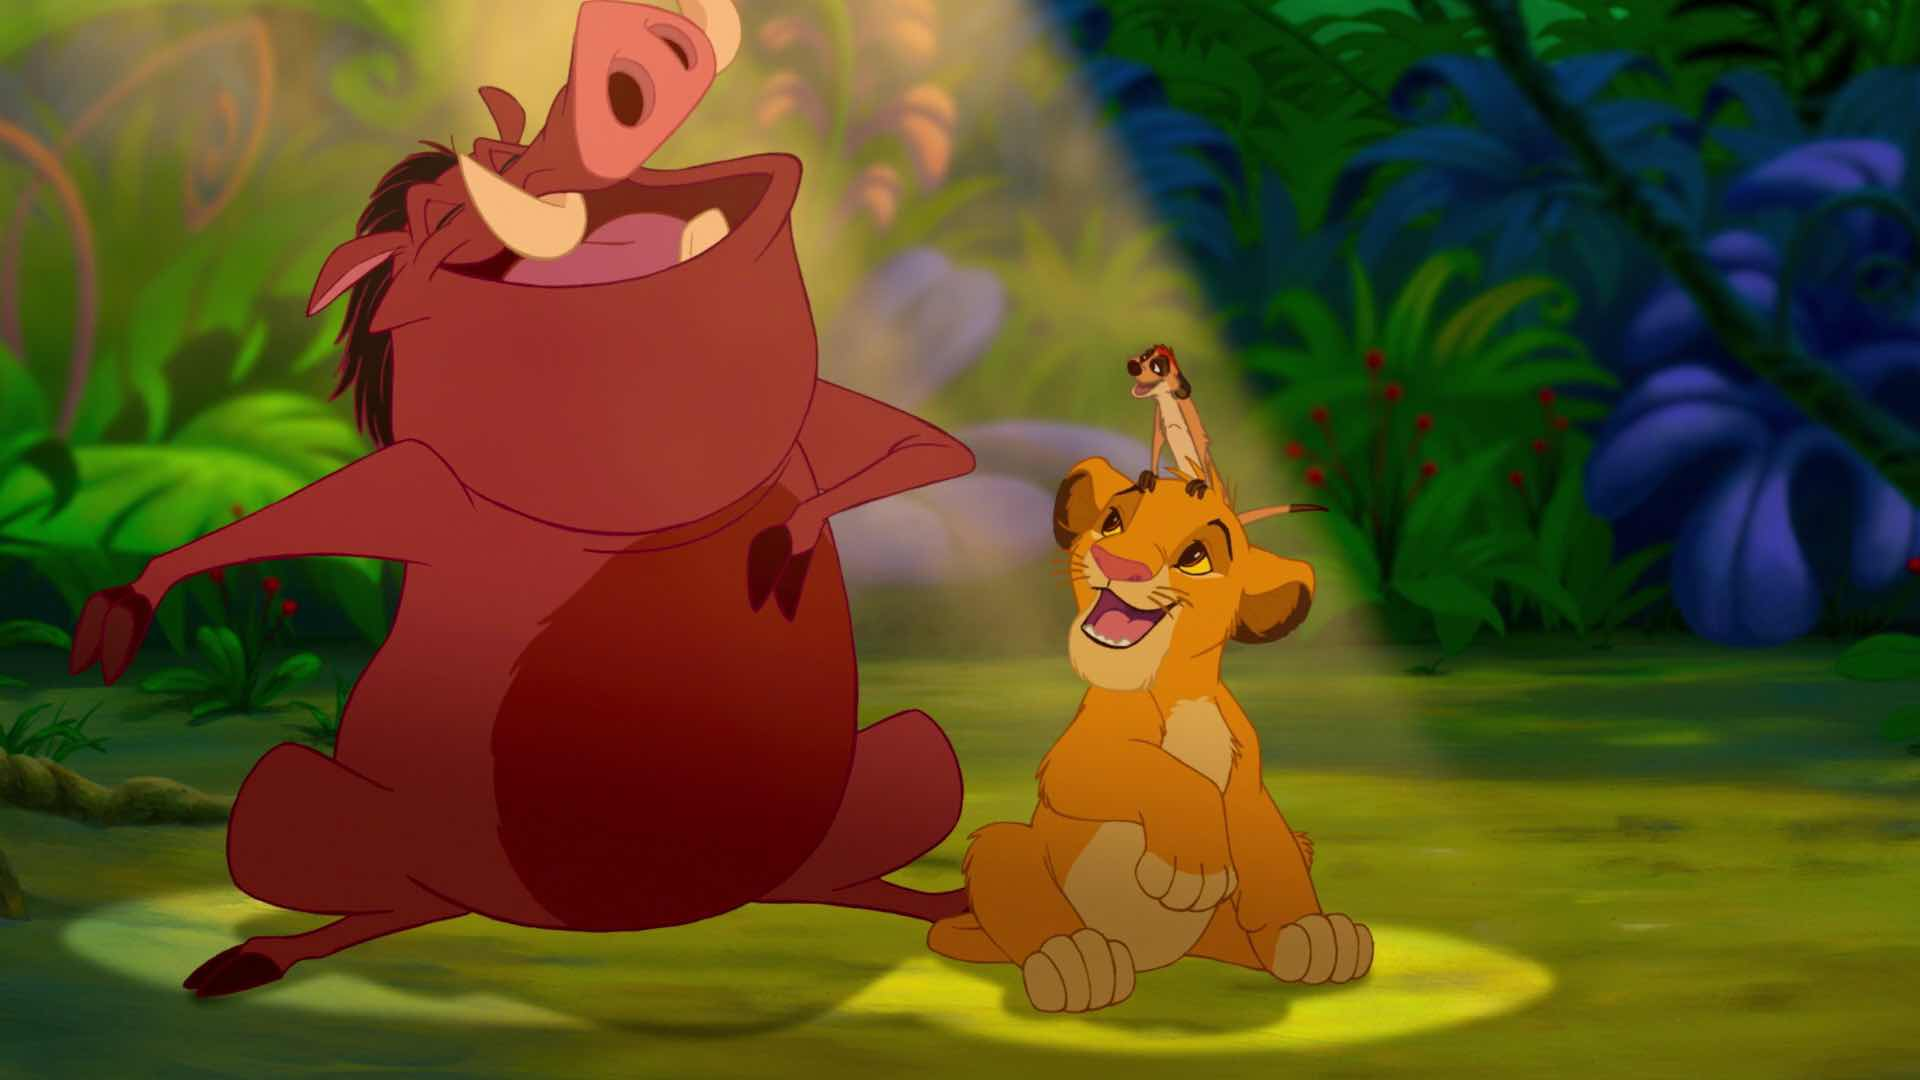 Hakuna Matata: Disney's Lion King trademark slammed | Star Mag